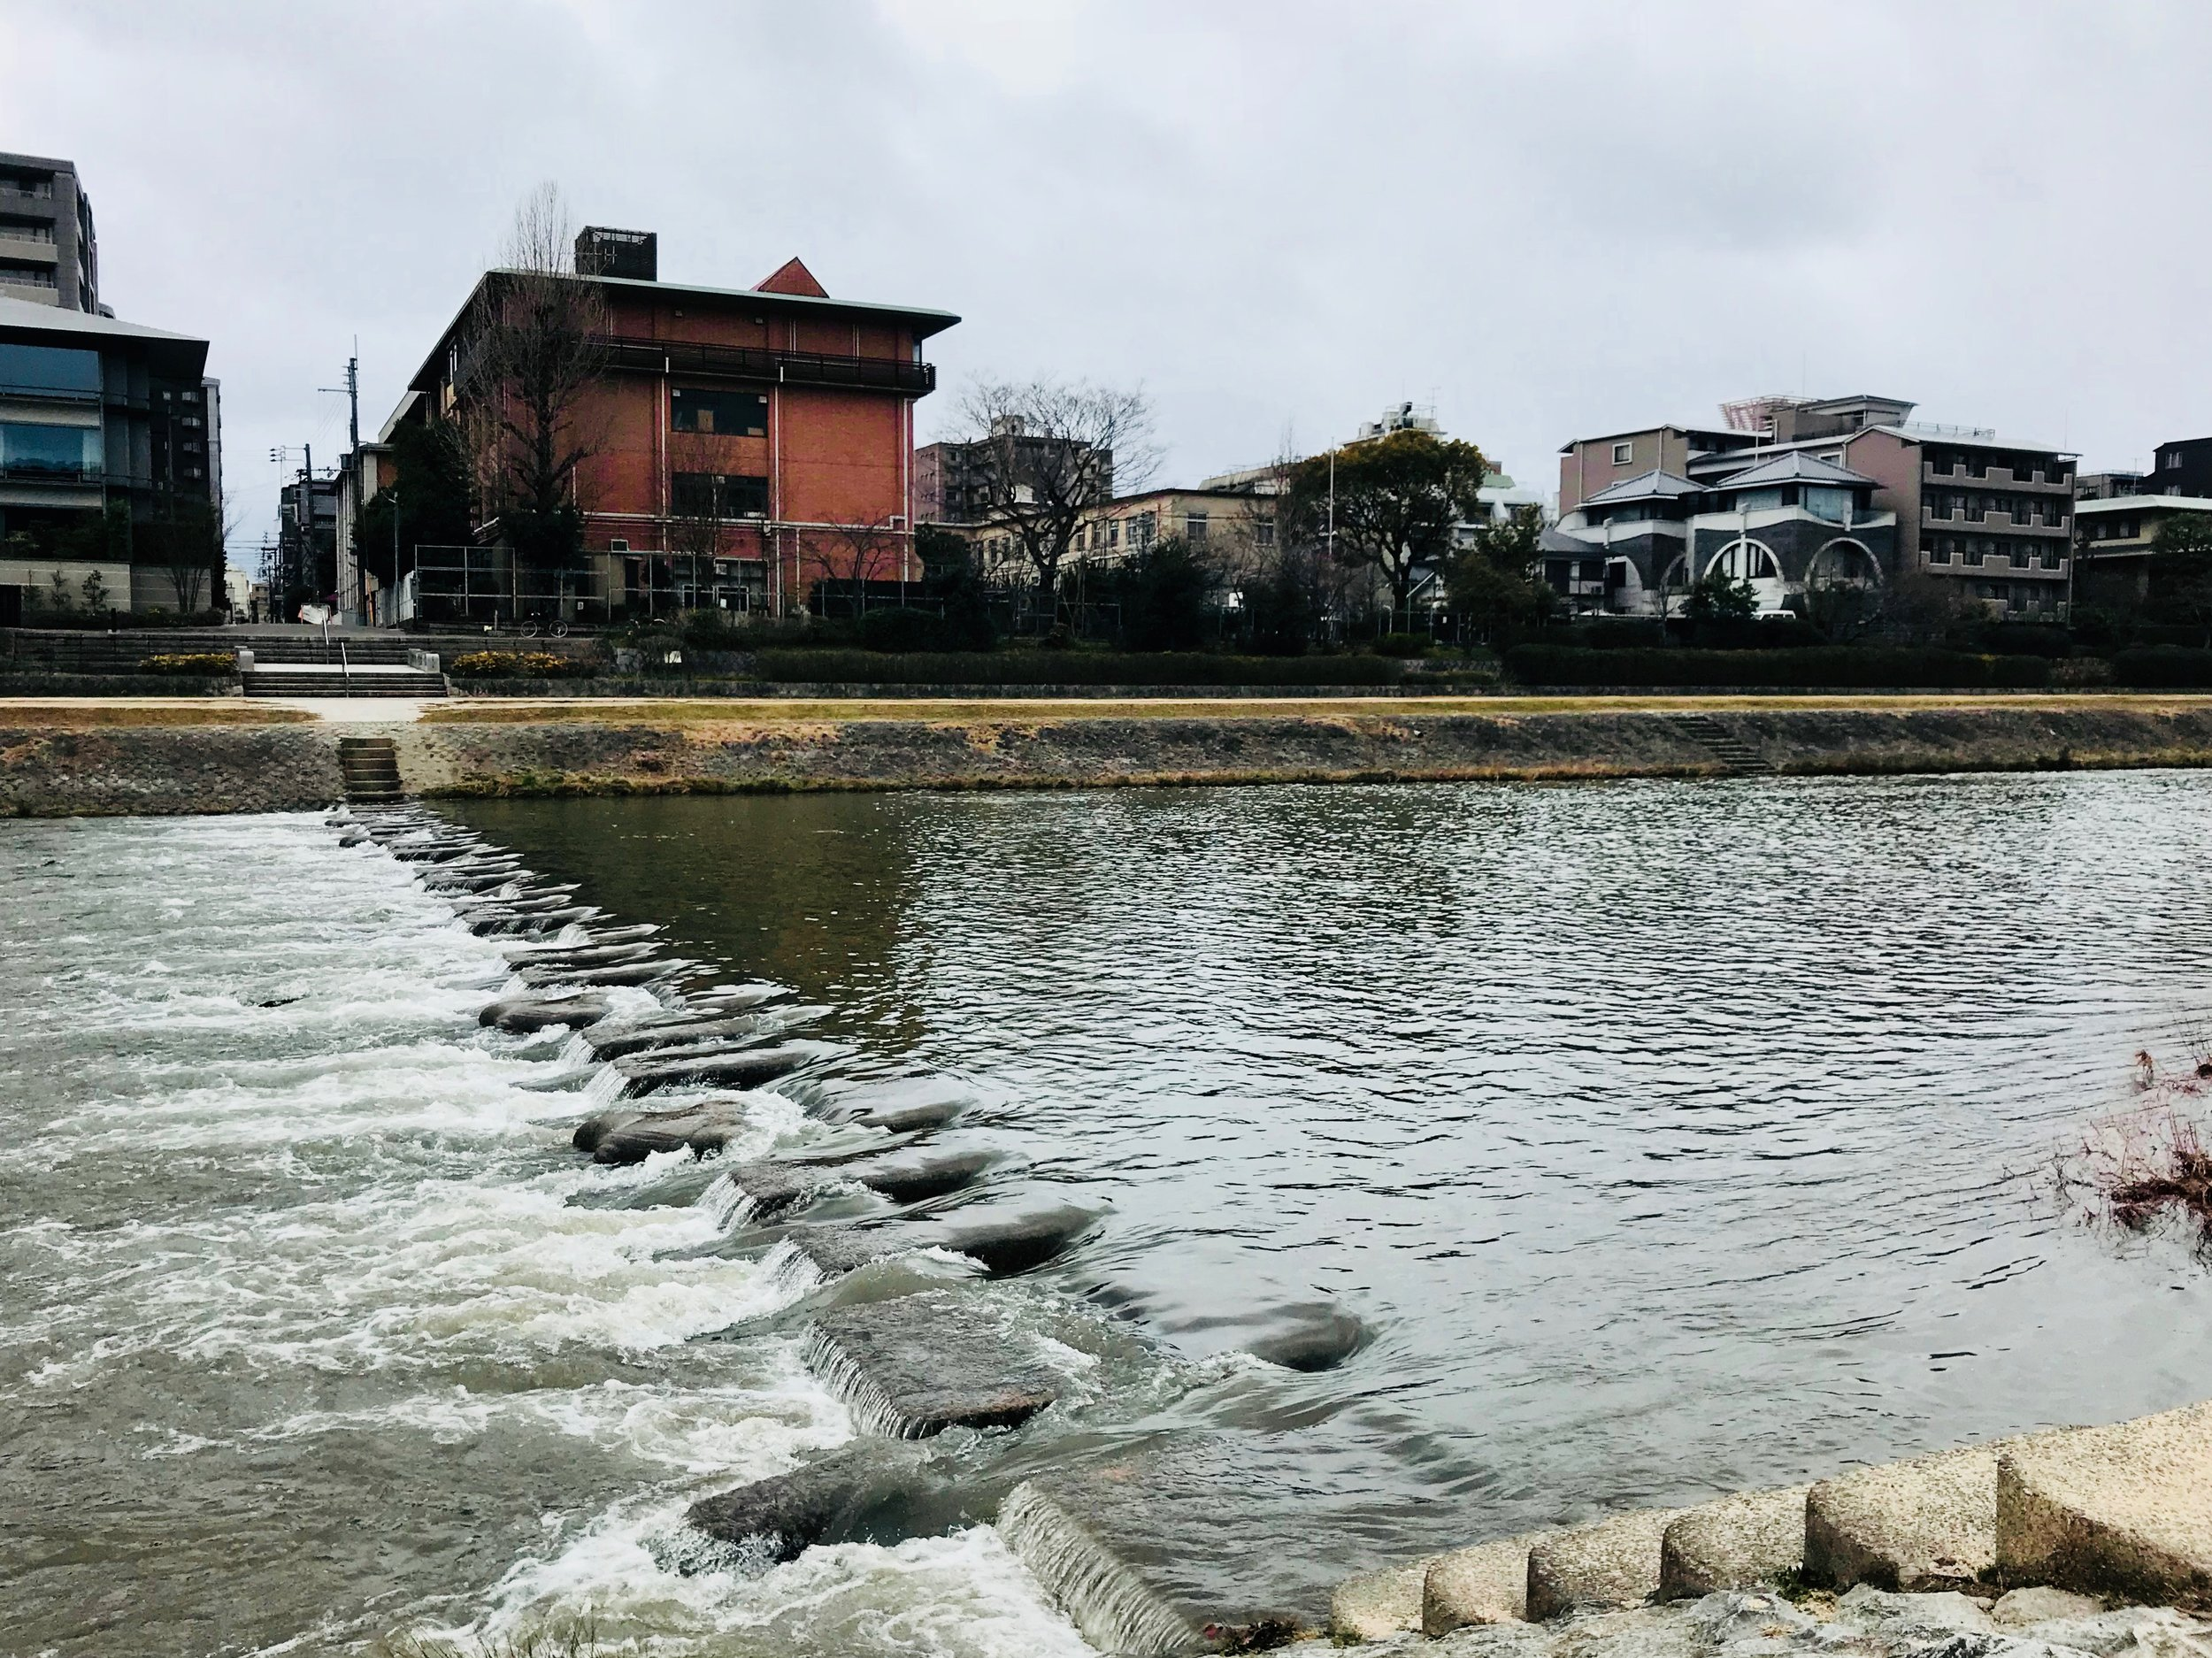 Stepping Stones by the Kamogawa River